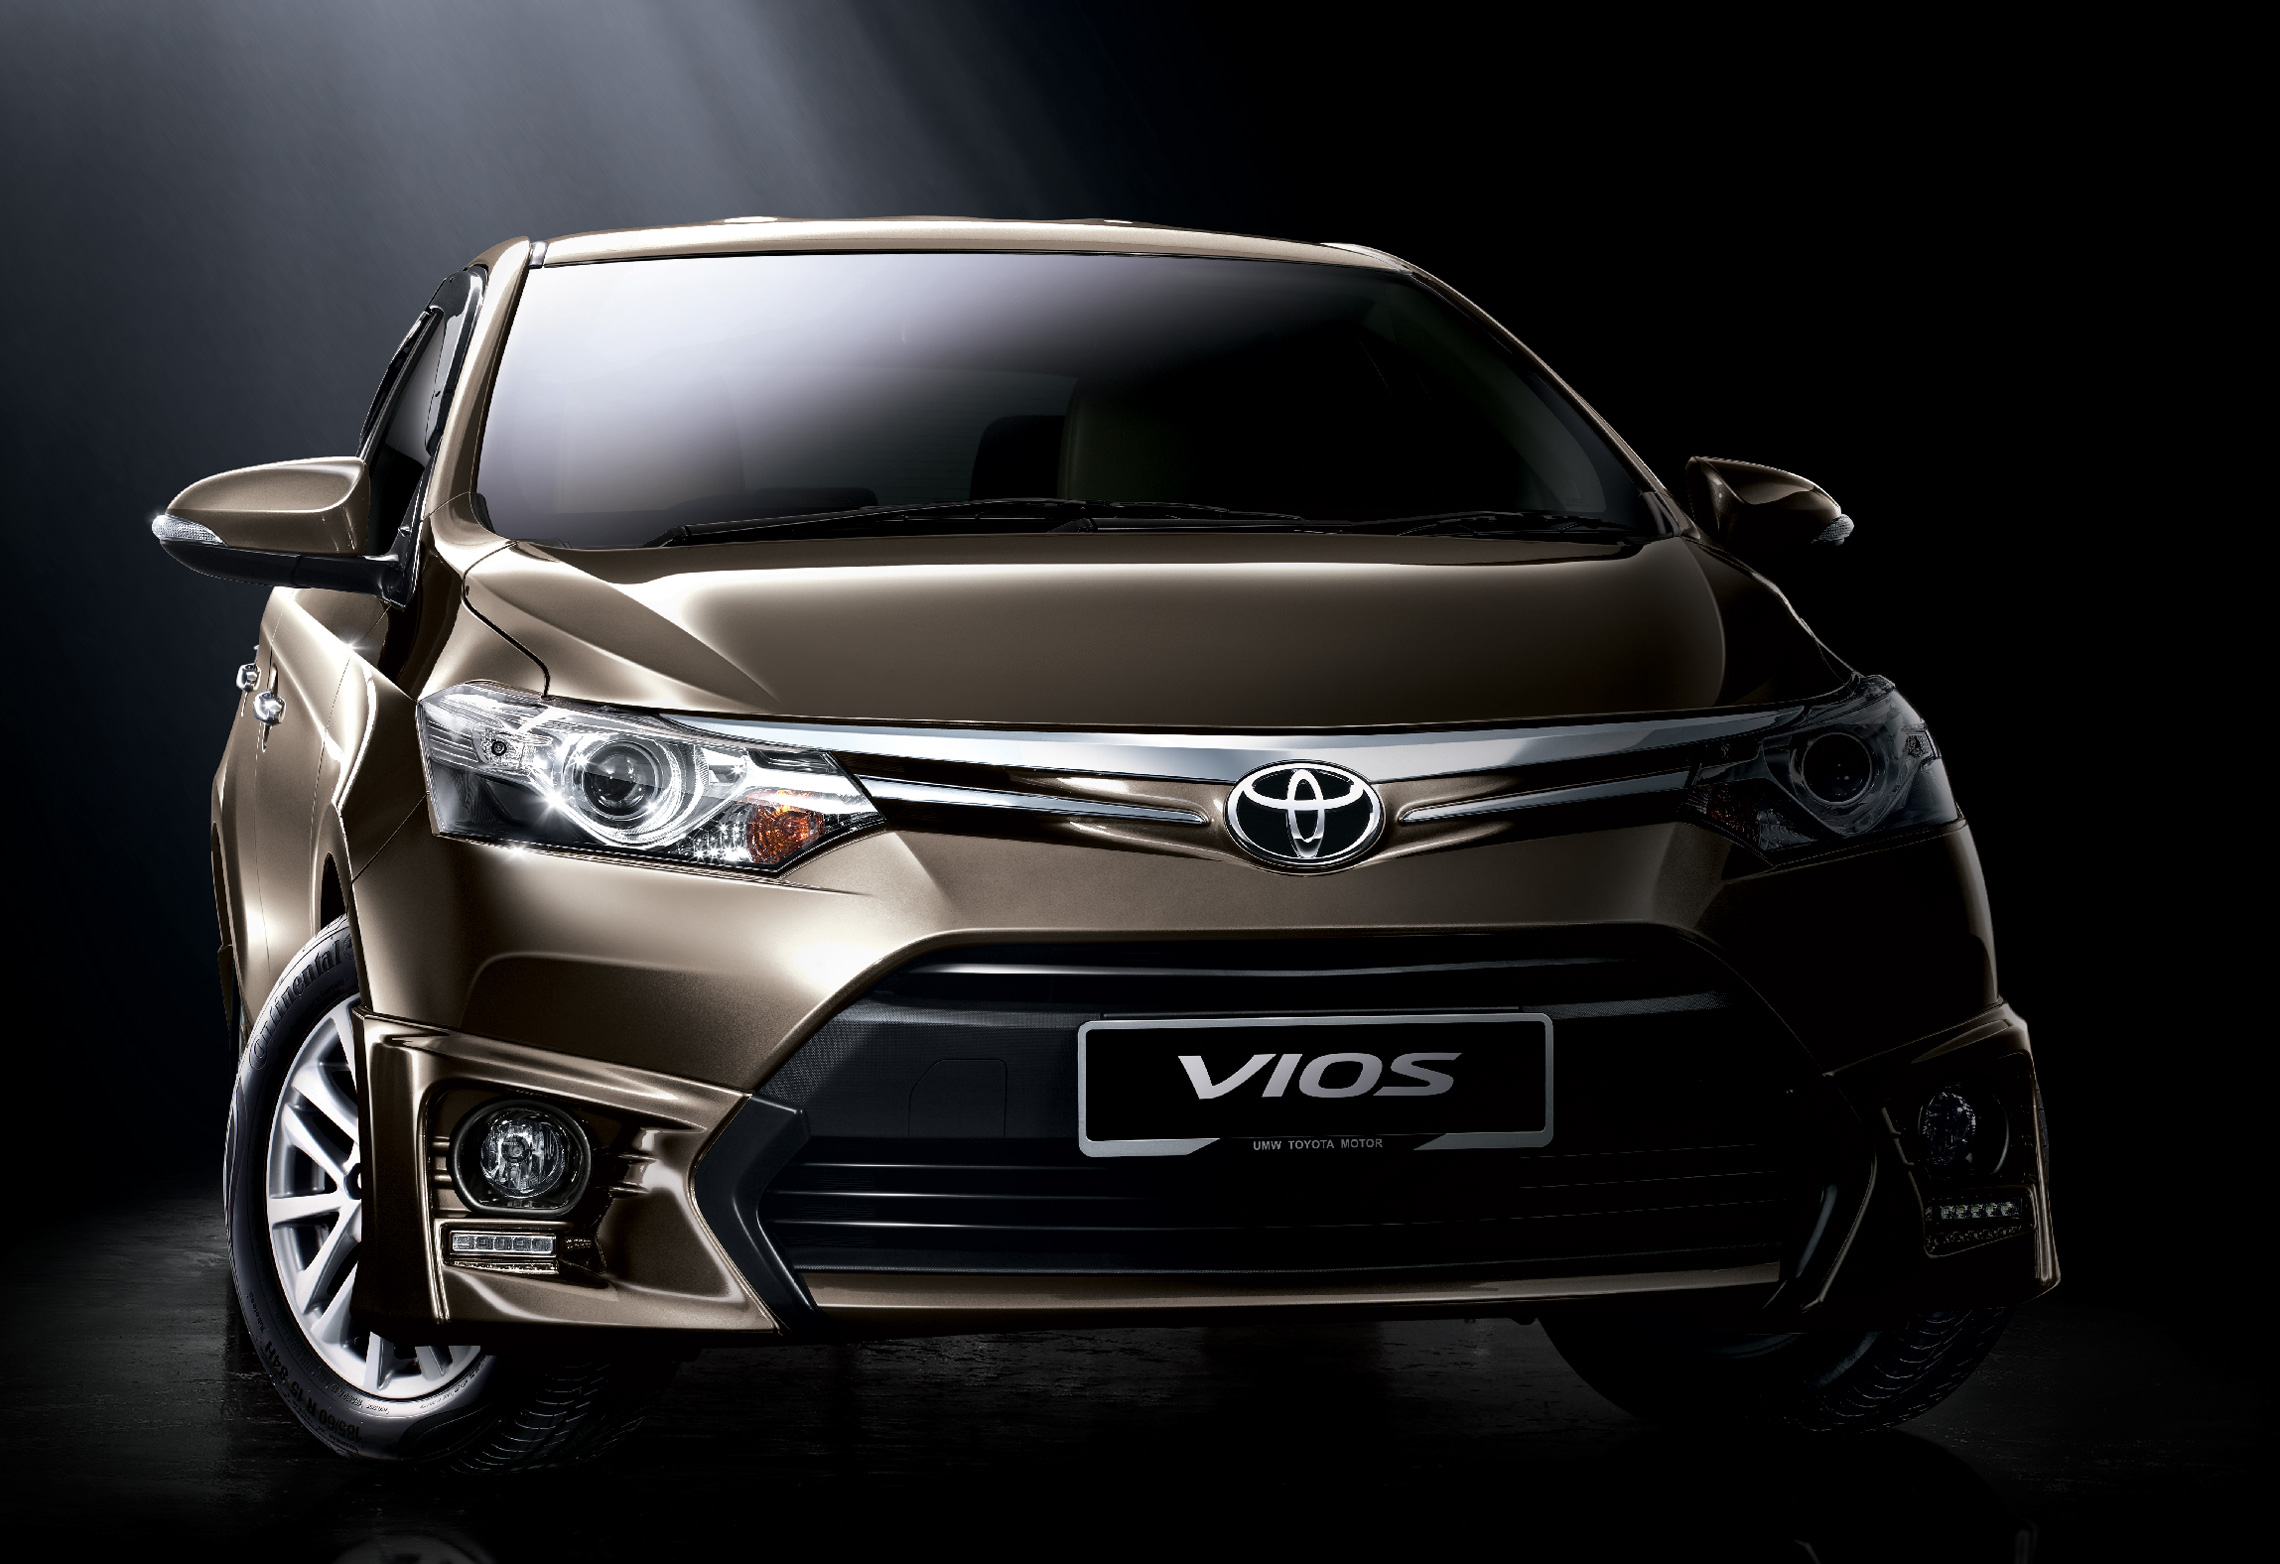 2013 Toyota Vios – spot and snap, and a preview too? Paul ...